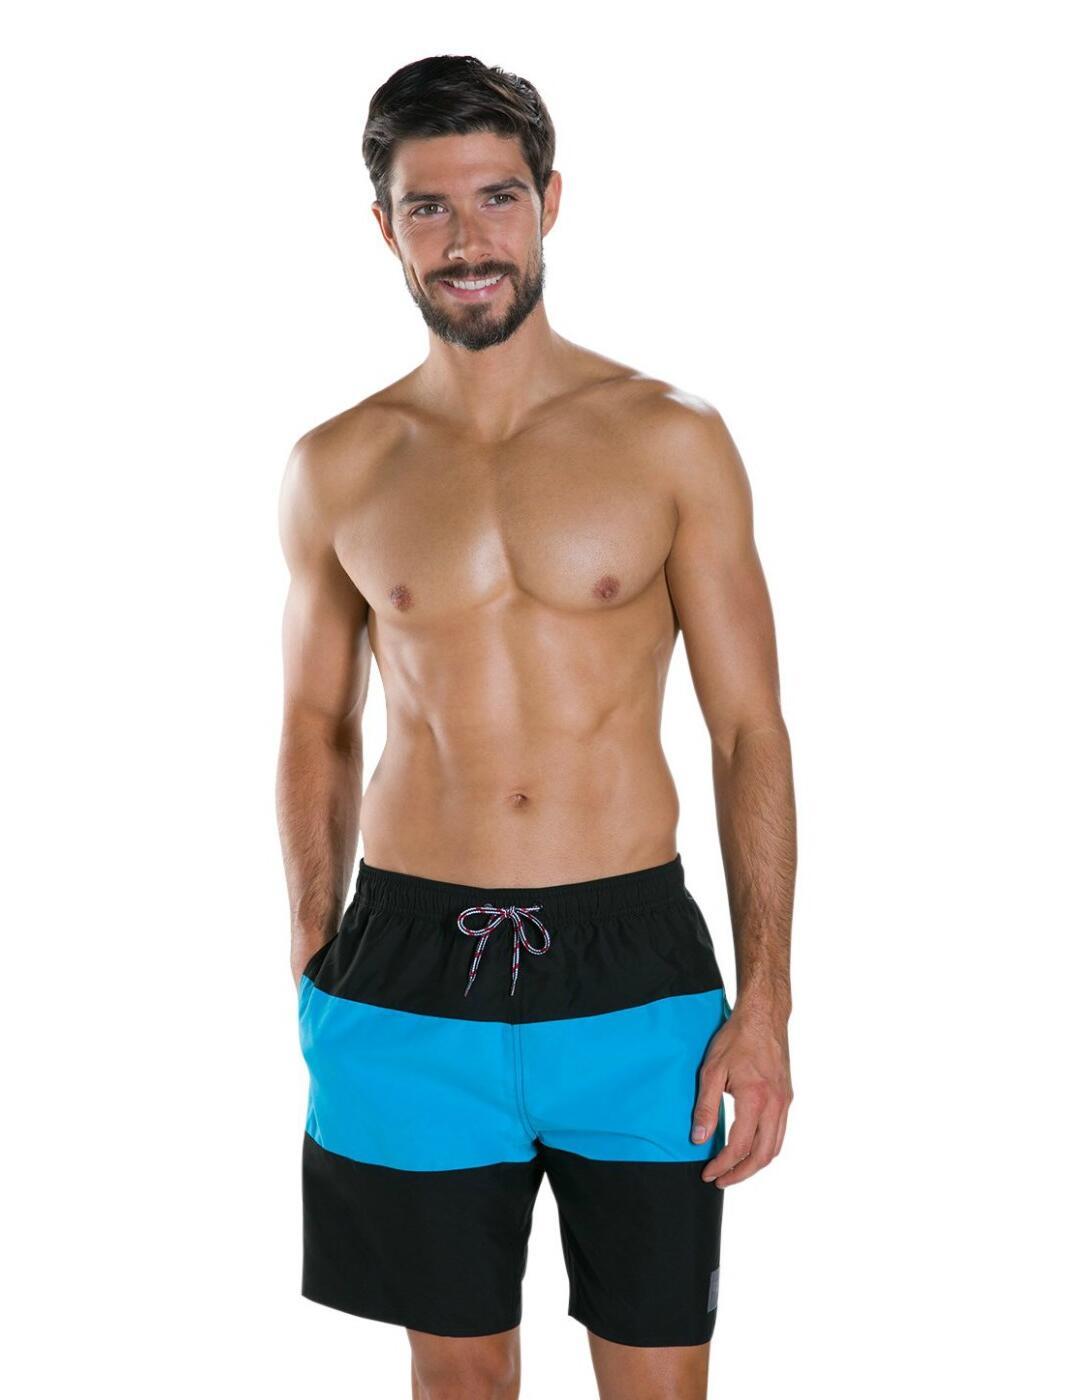 "811362A504 Speedo Men's 18"" Panel Leisure Swim Shorts - 811362A504 Black/Blue"